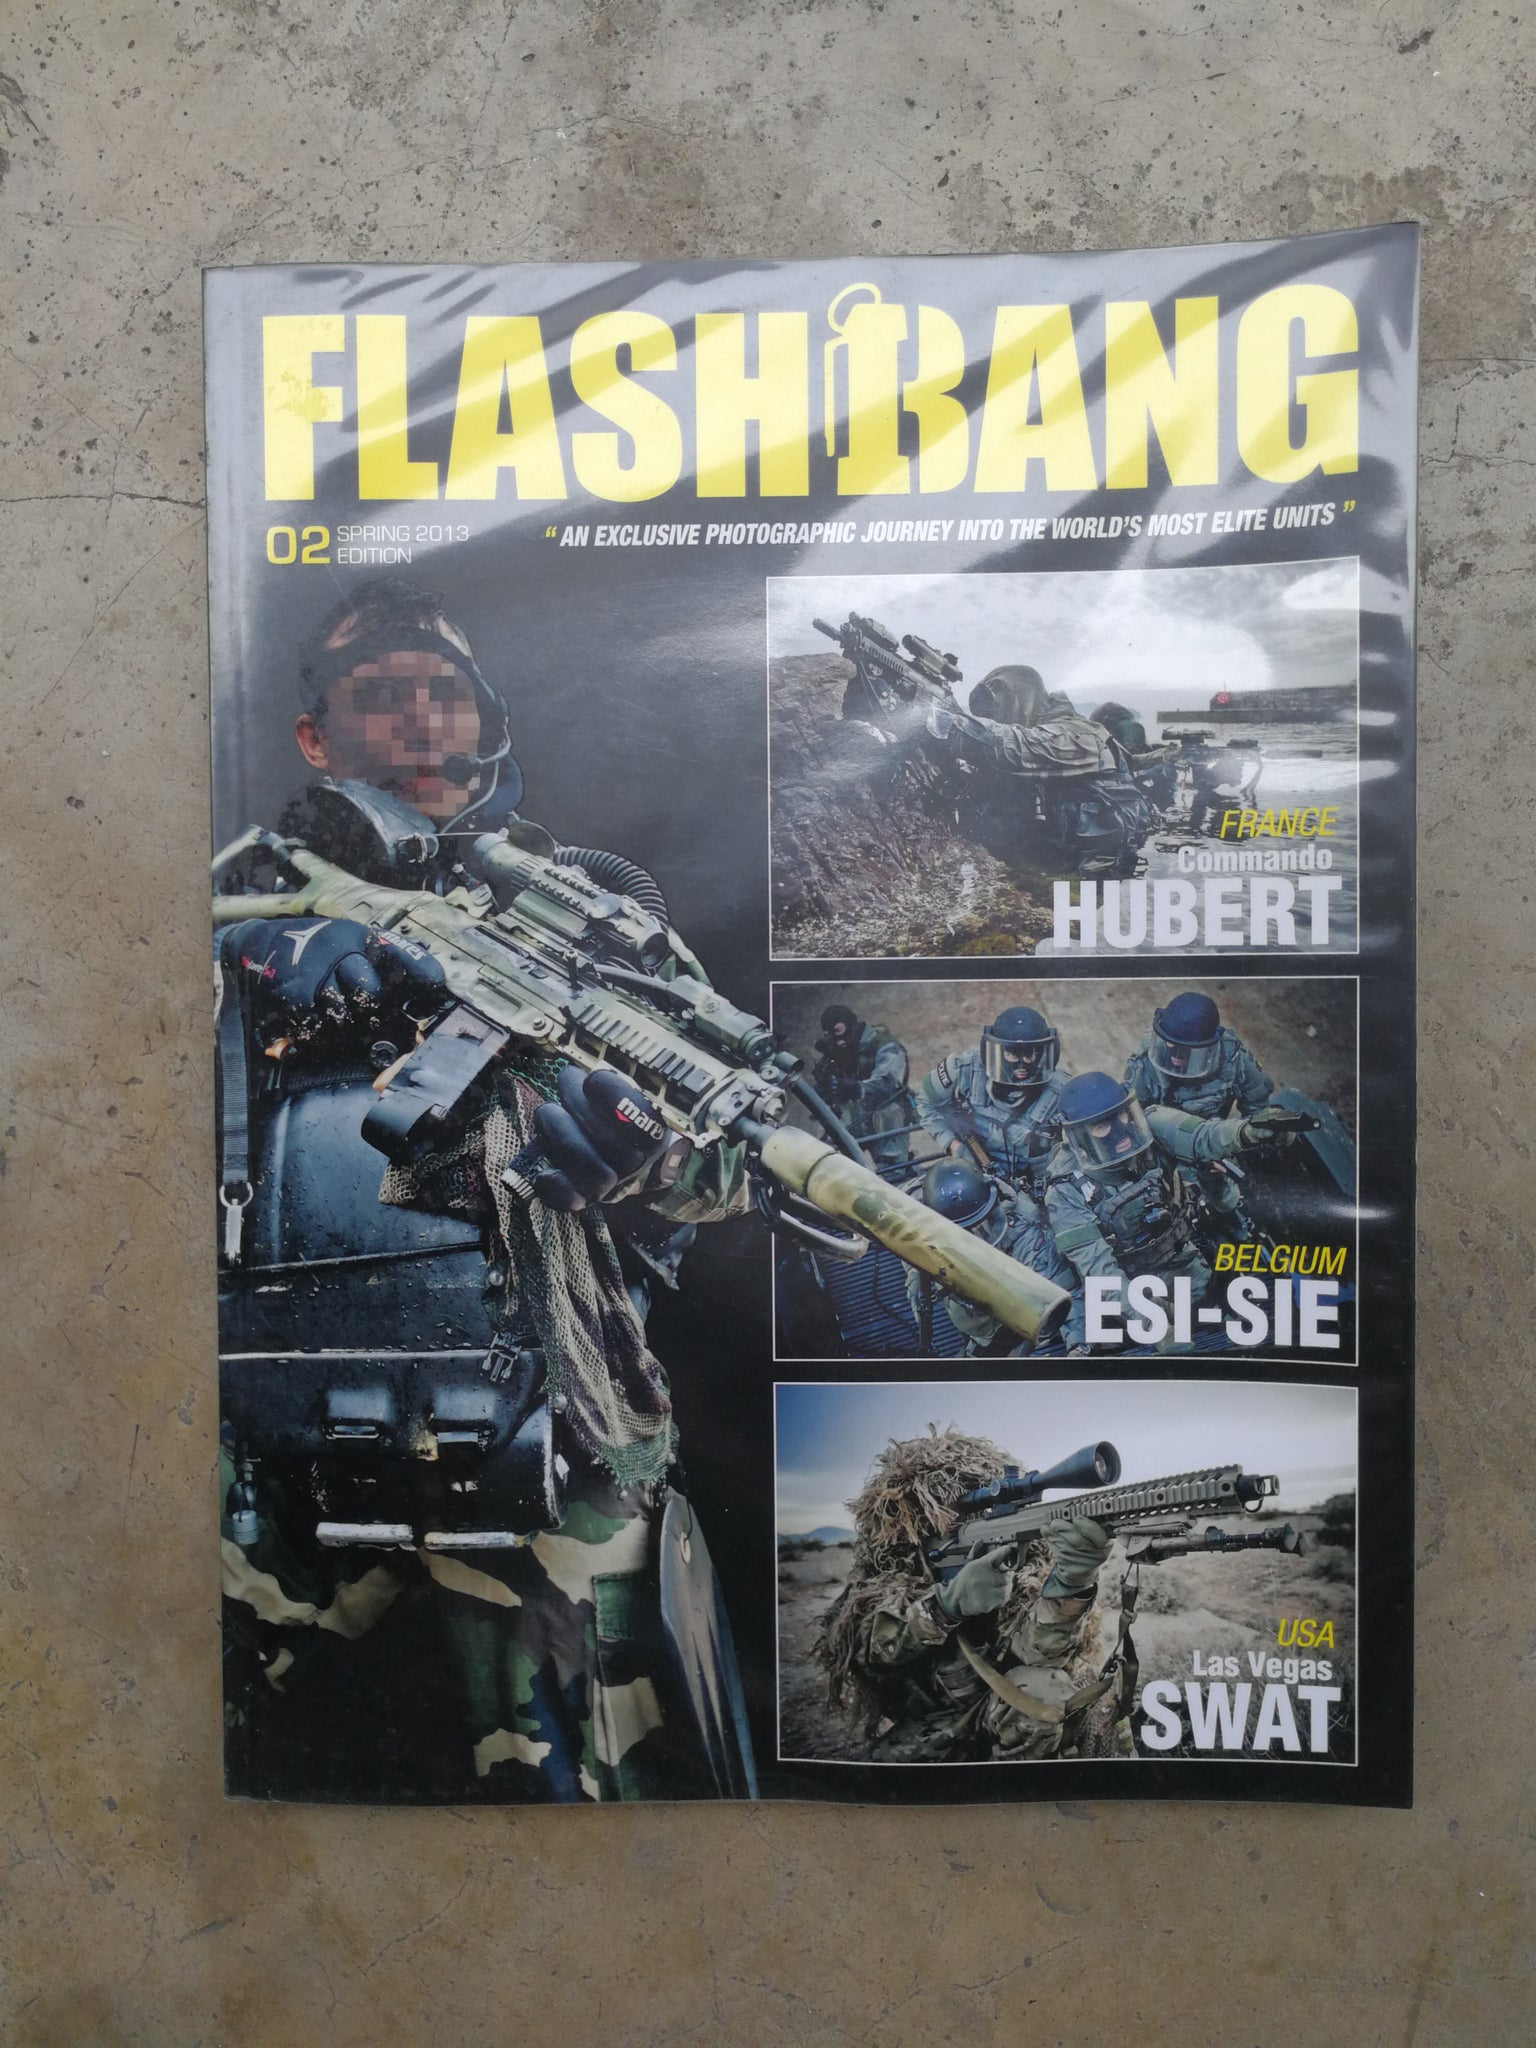 Flashbang Magazine Volume 2